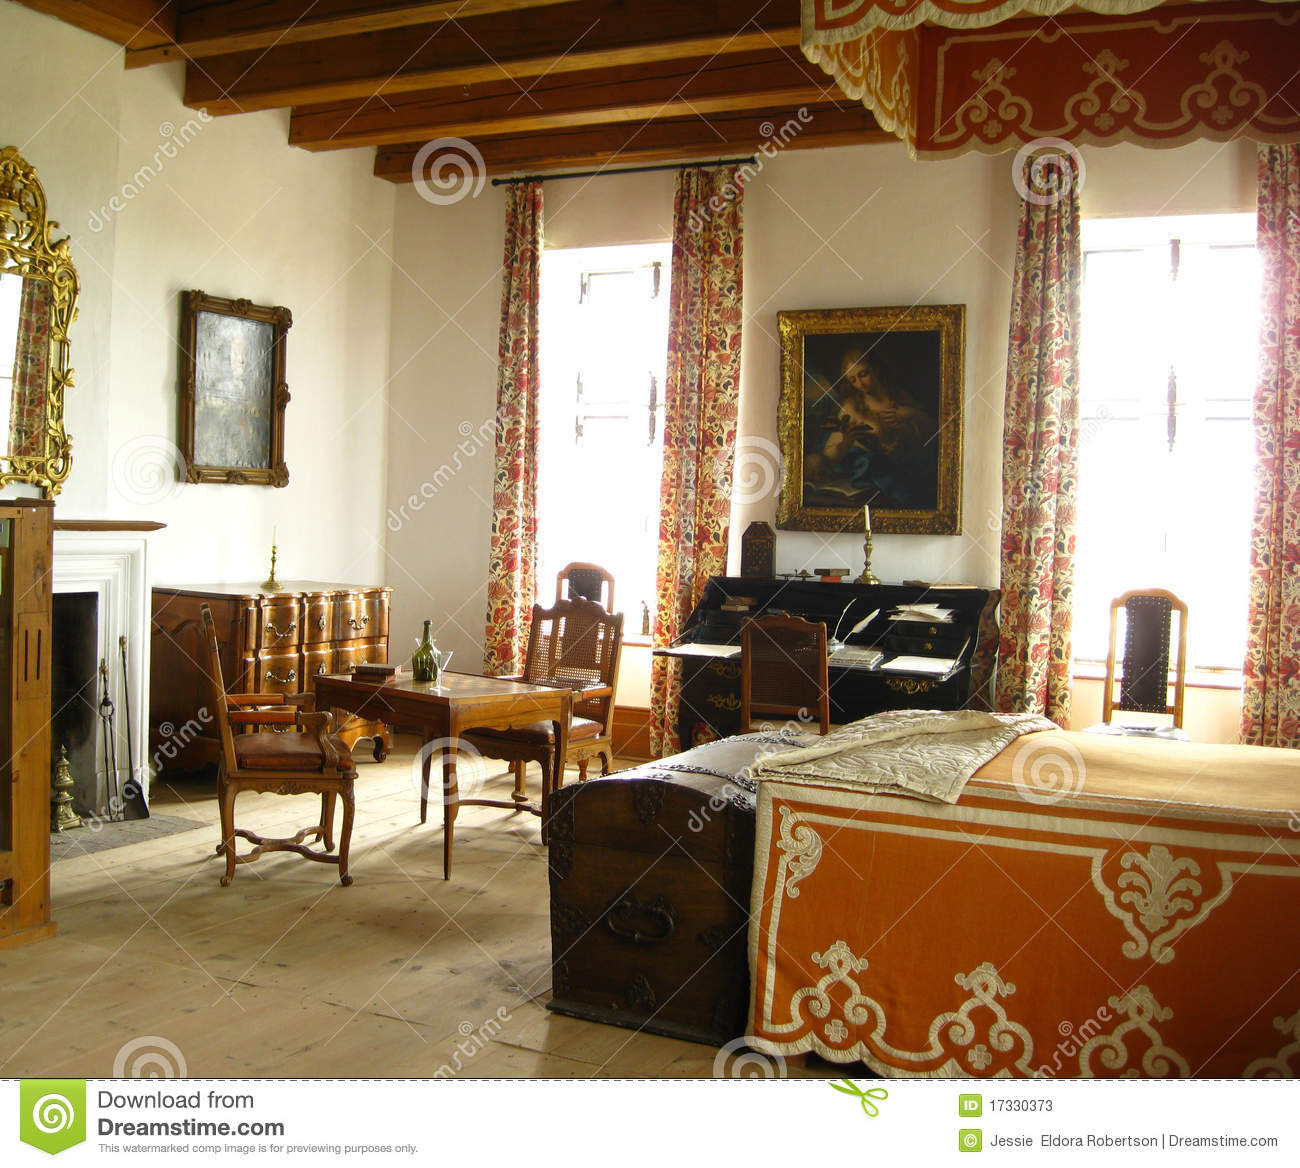 Vintage french bedroom stock image image of interiors for Classic french bedroom